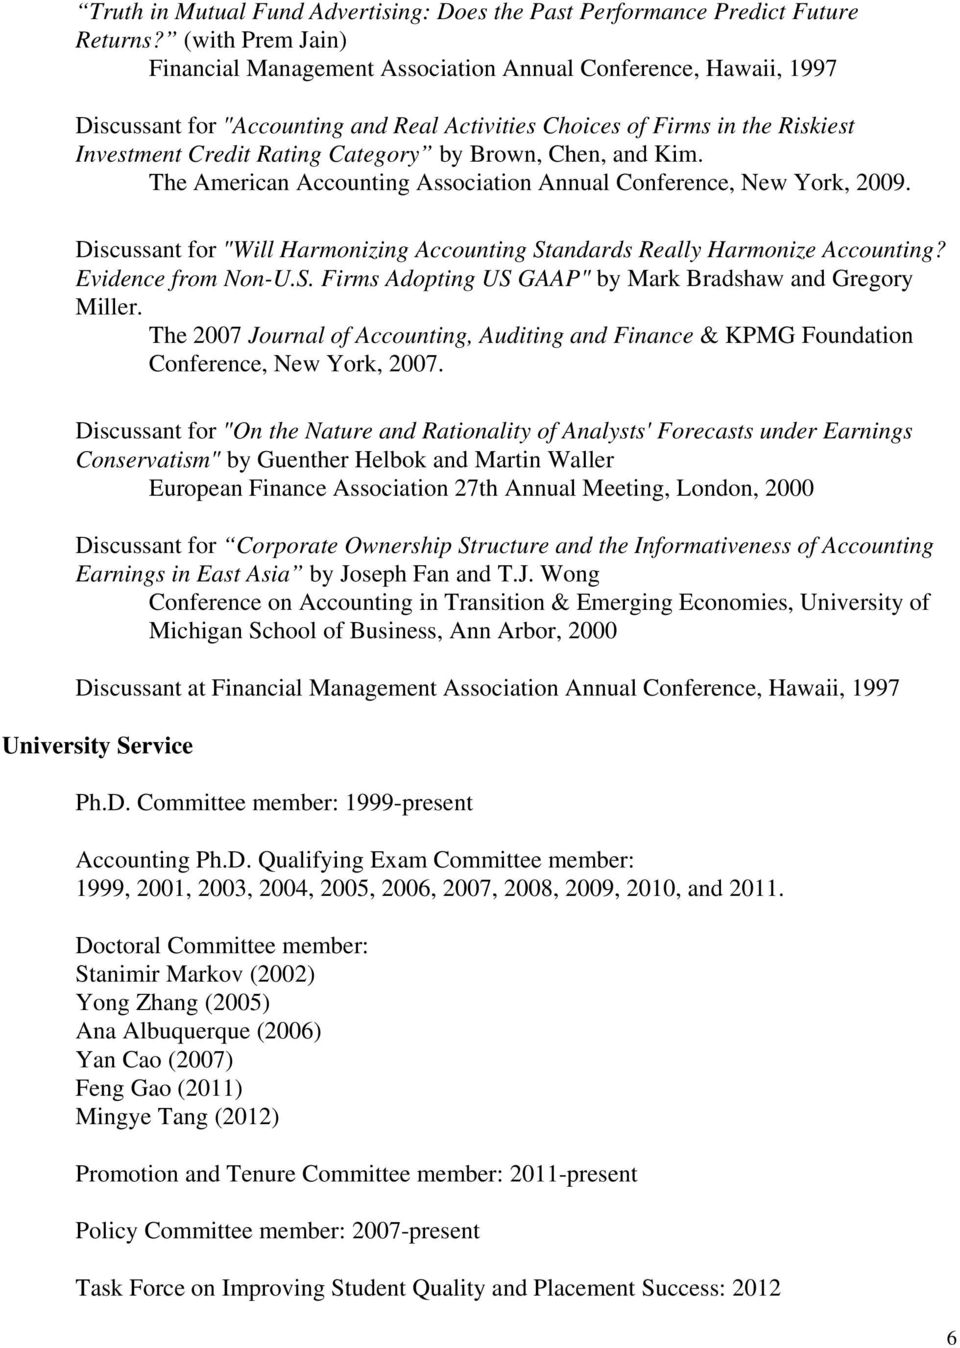 "Brown, Chen, and Kim. The American Accounting Association Annual Conference, New York, 2009. Discussant for ""Will Harmonizing Accounting Standards Really Harmonize Accounting? Evidence from Non-U.S. Firms Adopting US GAAP"" by Mark Bradshaw and Gregory Miller."